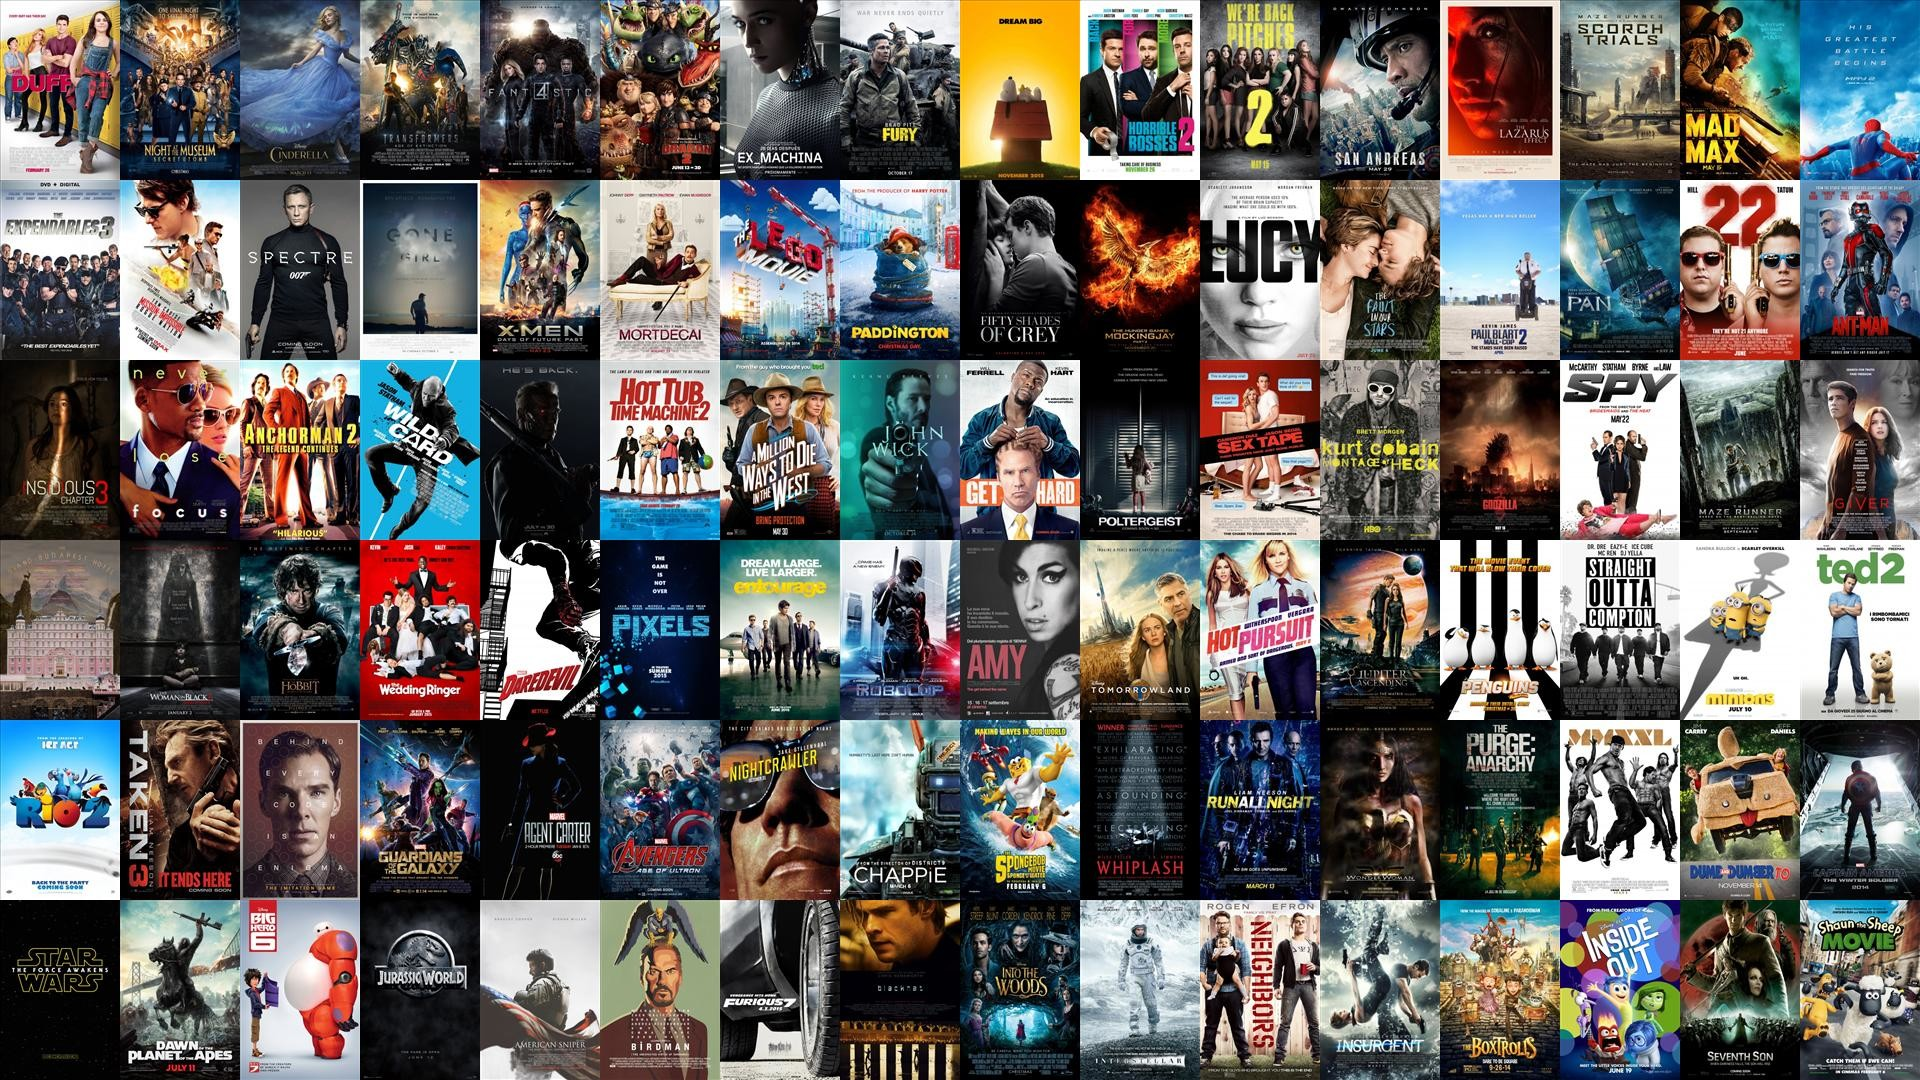 Movie posters wallpapers 1920x1080 2015 2014 movie poster wallpaper oc voltagebd Image collections